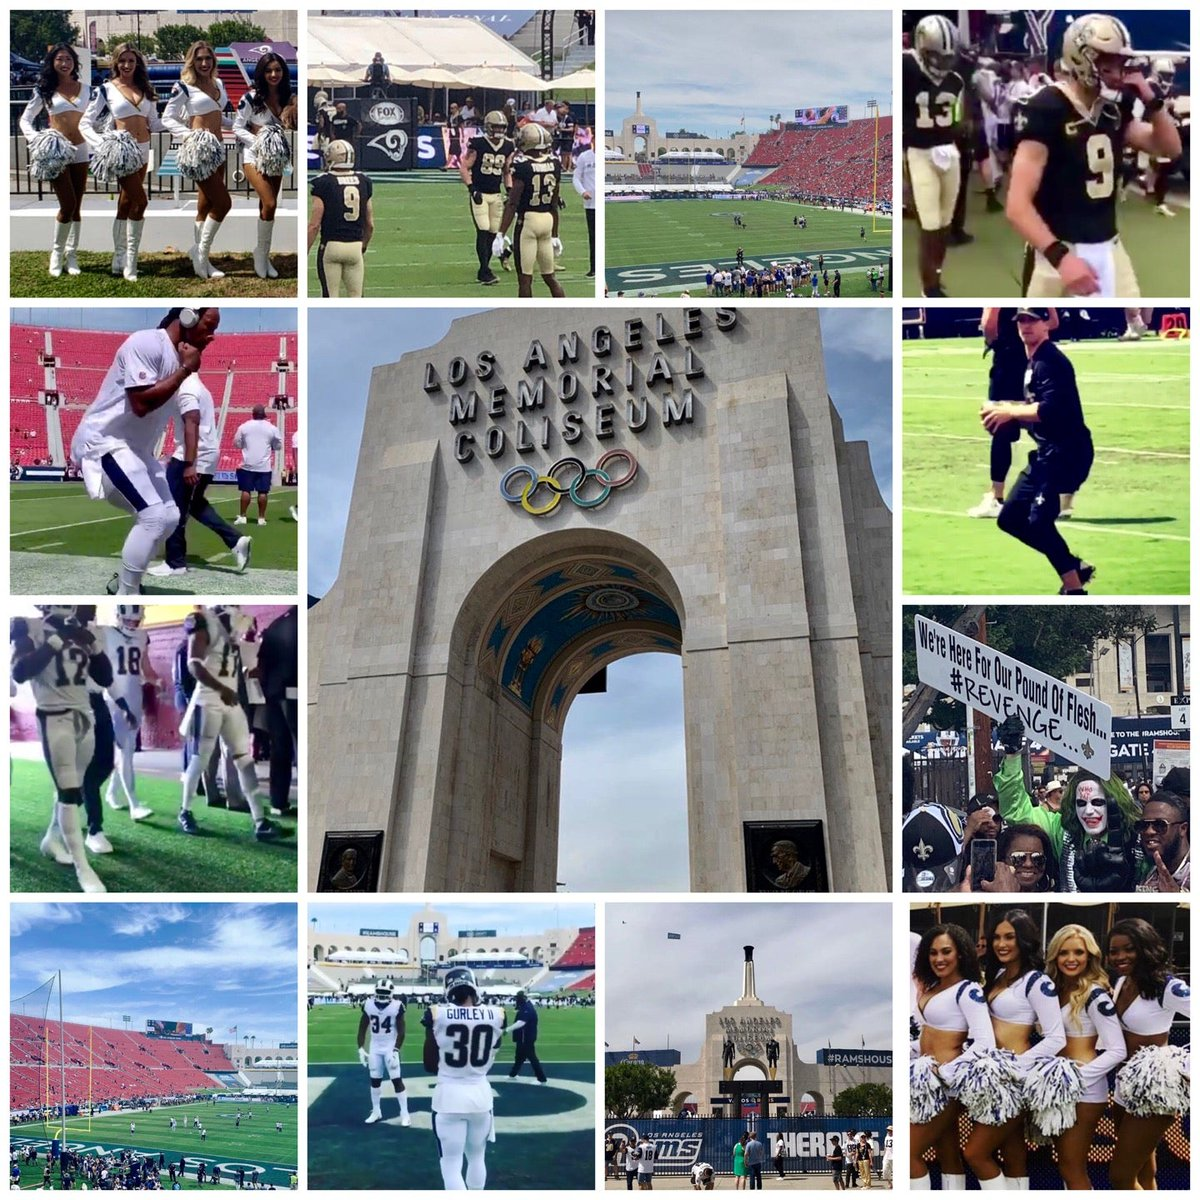 Game Of The Week! @NFLonFOX #NOvsLAR #Saints #LARams #NFL100 #WeReady @kaiserPRmedia (@ Los Angeles Memorial Coliseum - @lacoliseum in Los Angeles, CA) swarmapp.com/c/4AnH1zW4NFs